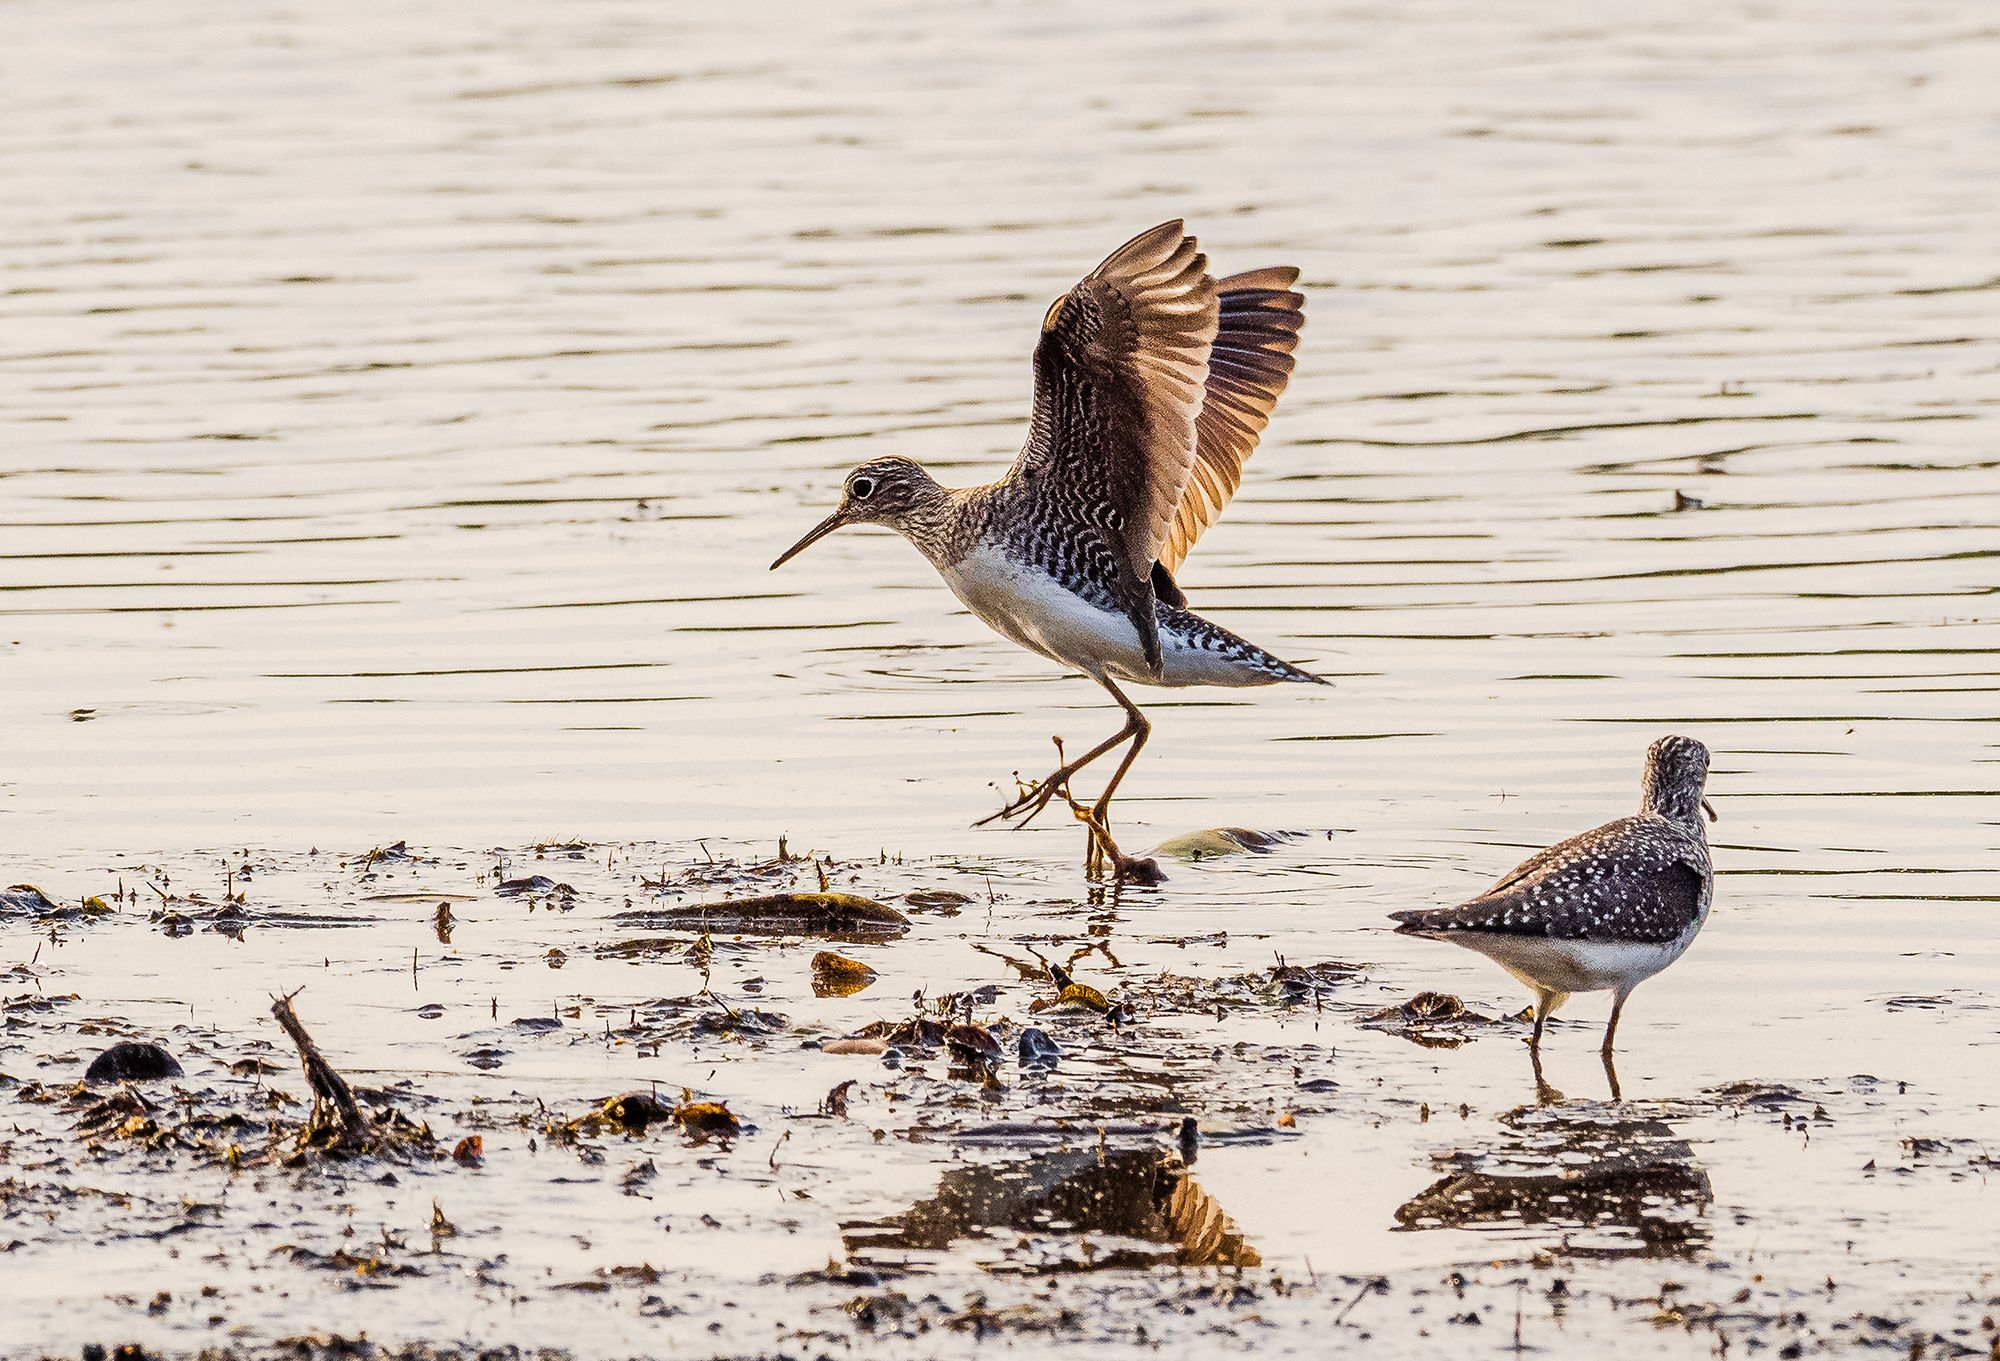 Two small brown and white shorebirds forage at the edge of a lake. The bird in the background is just taking off from the ground with its wings fully open and extended.